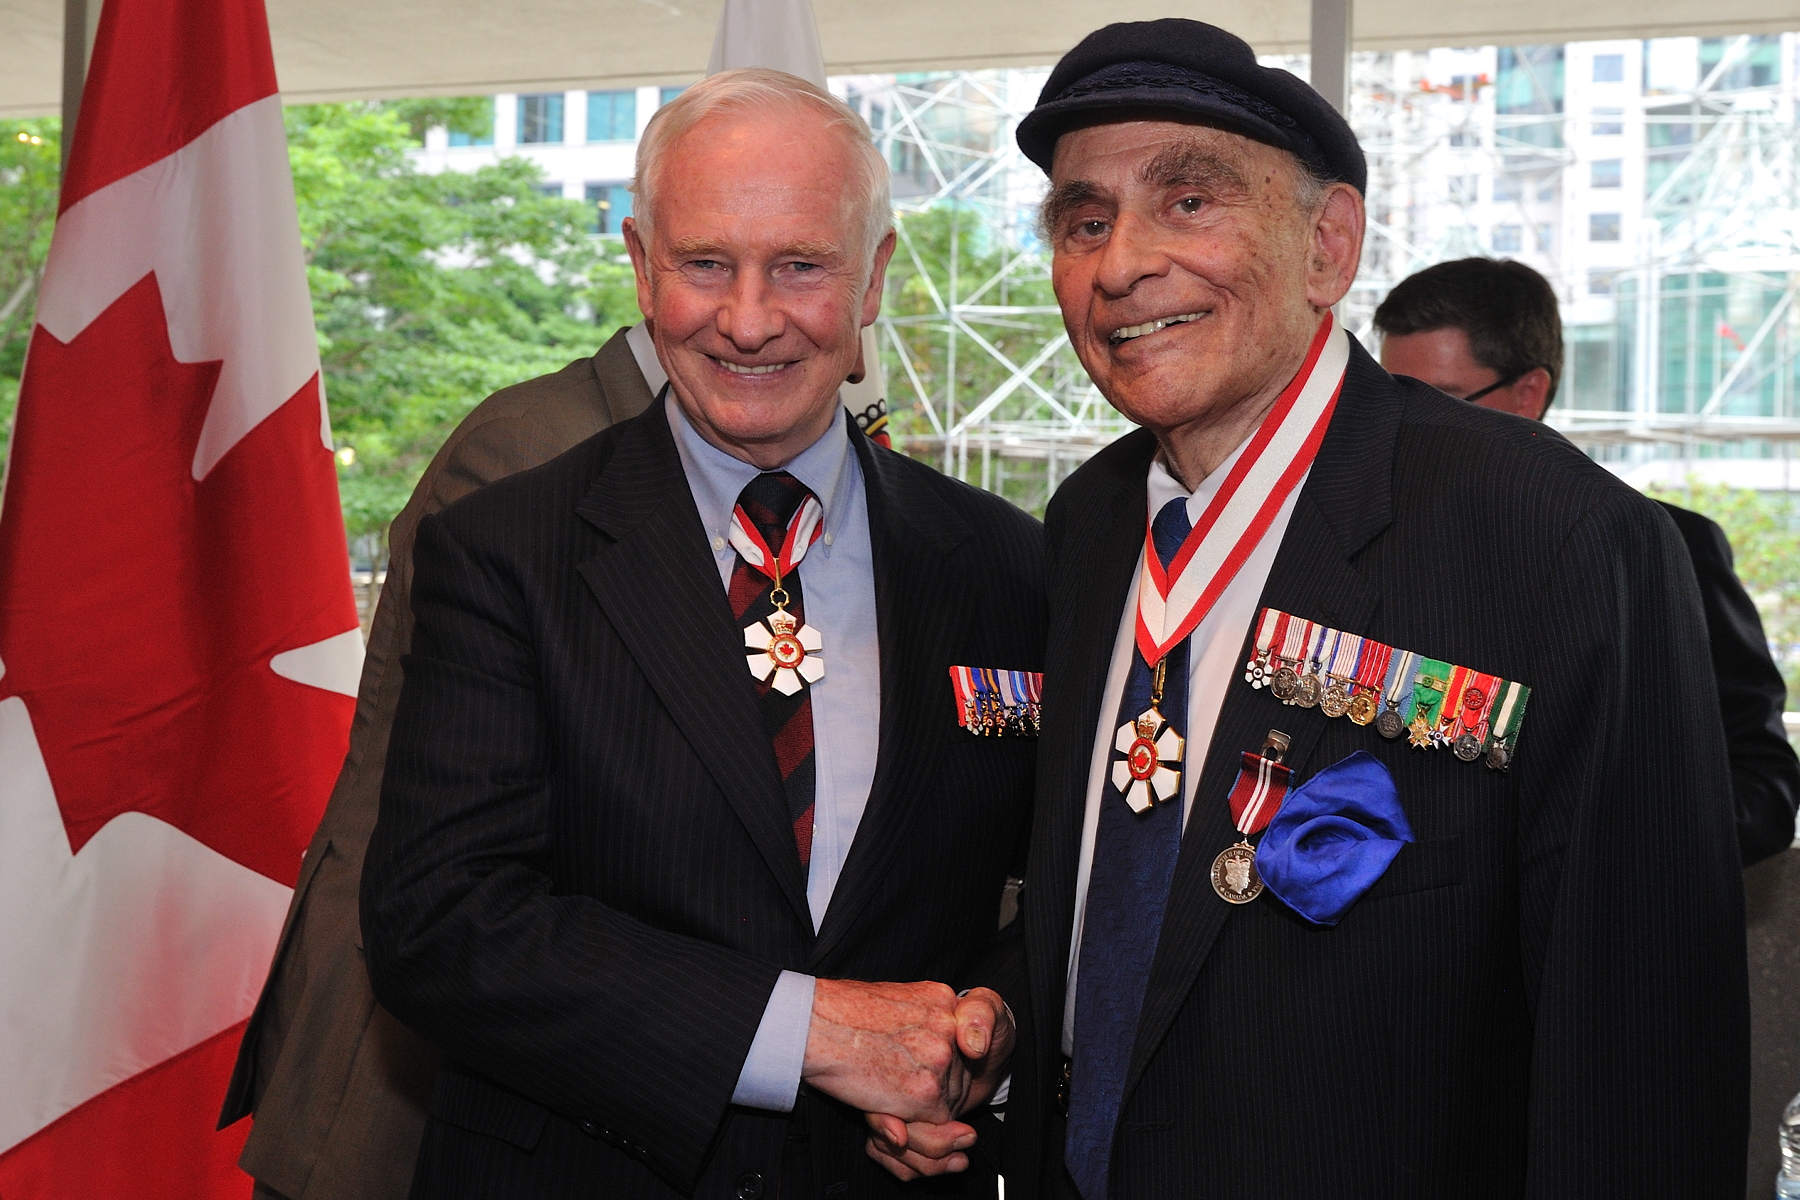 His Excellency also presented the Diamond Jubilee Medal to Peter C. Newman, C.C., renowned historian and biographer and Companion of the Order of Canada.